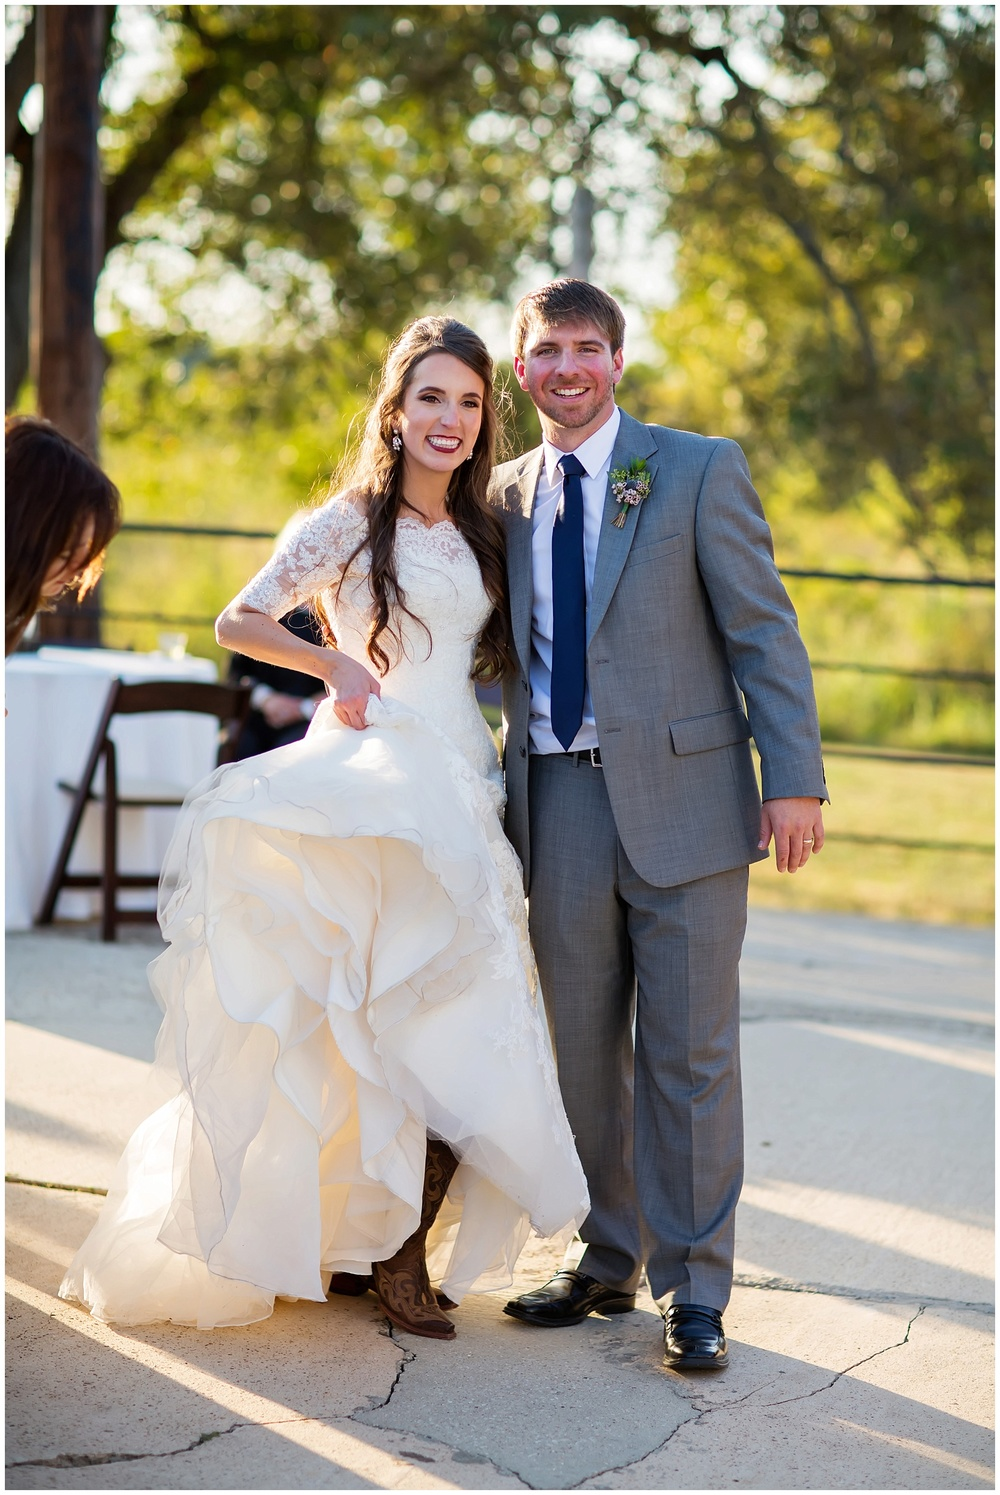 Kinler_DixieGin_Shreveport_Wedding_61.jpg